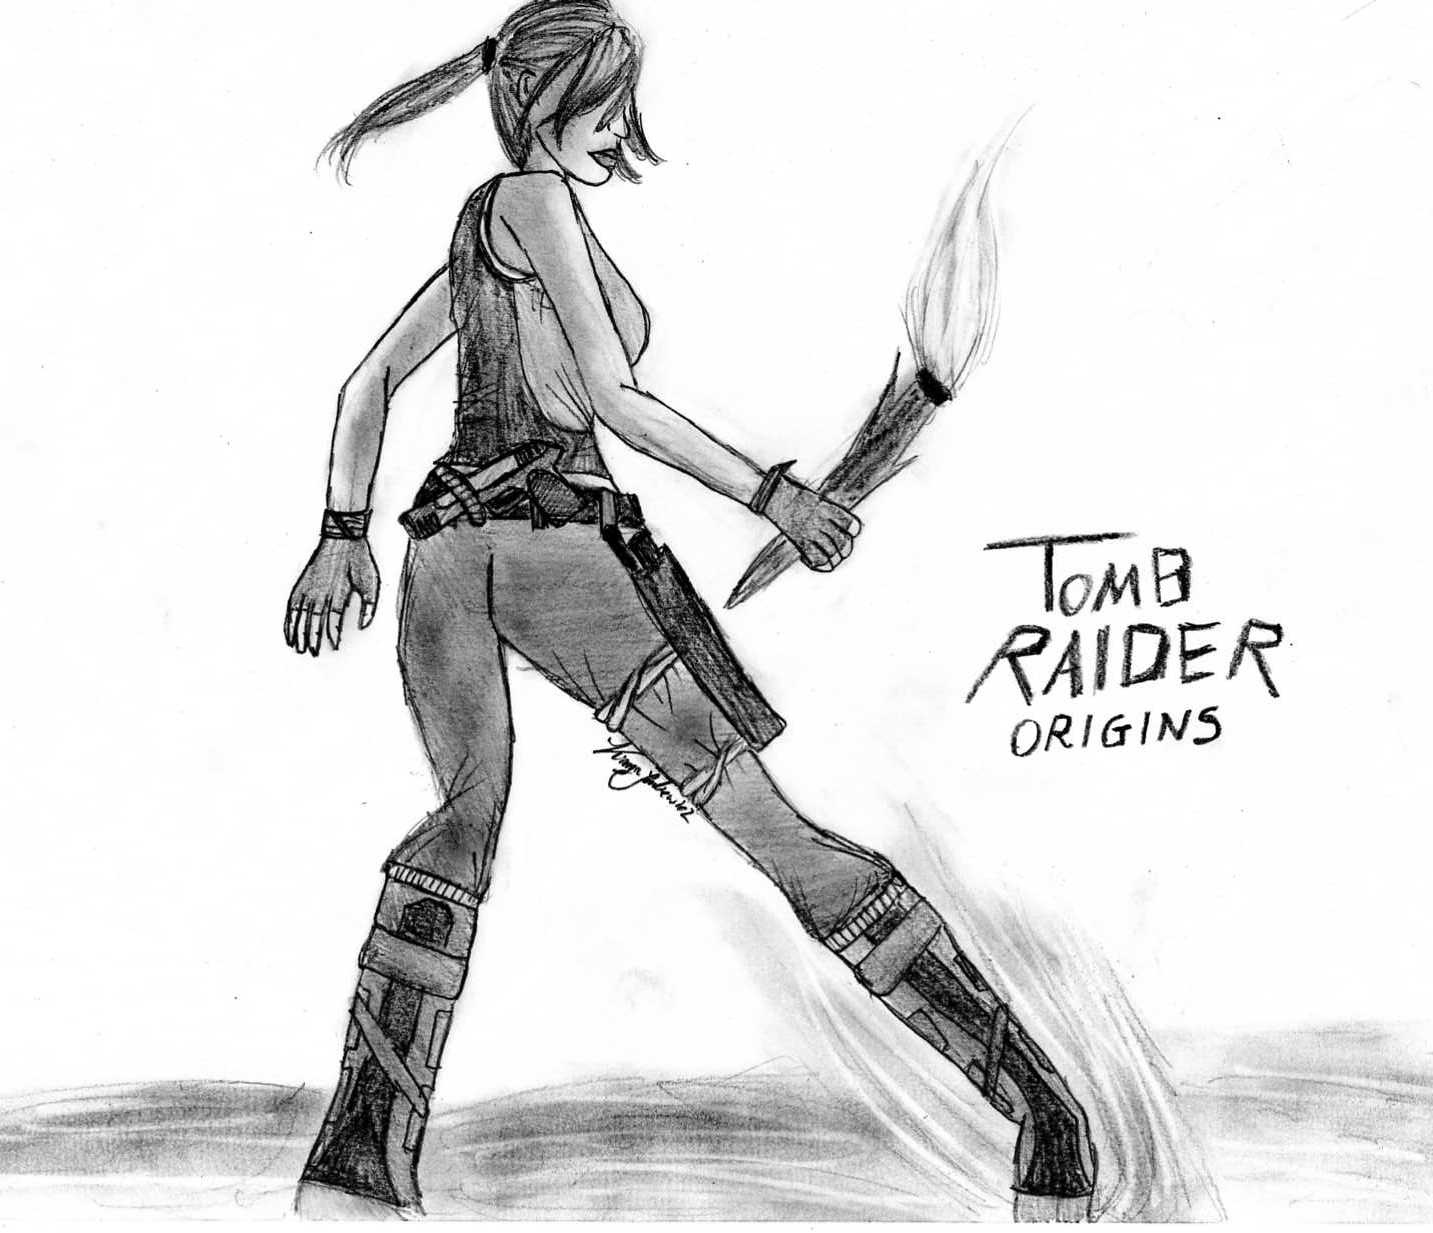 Tomb Rider Wallpaper: Tomb Raider Origins By Kinia24Lara On DeviantArt